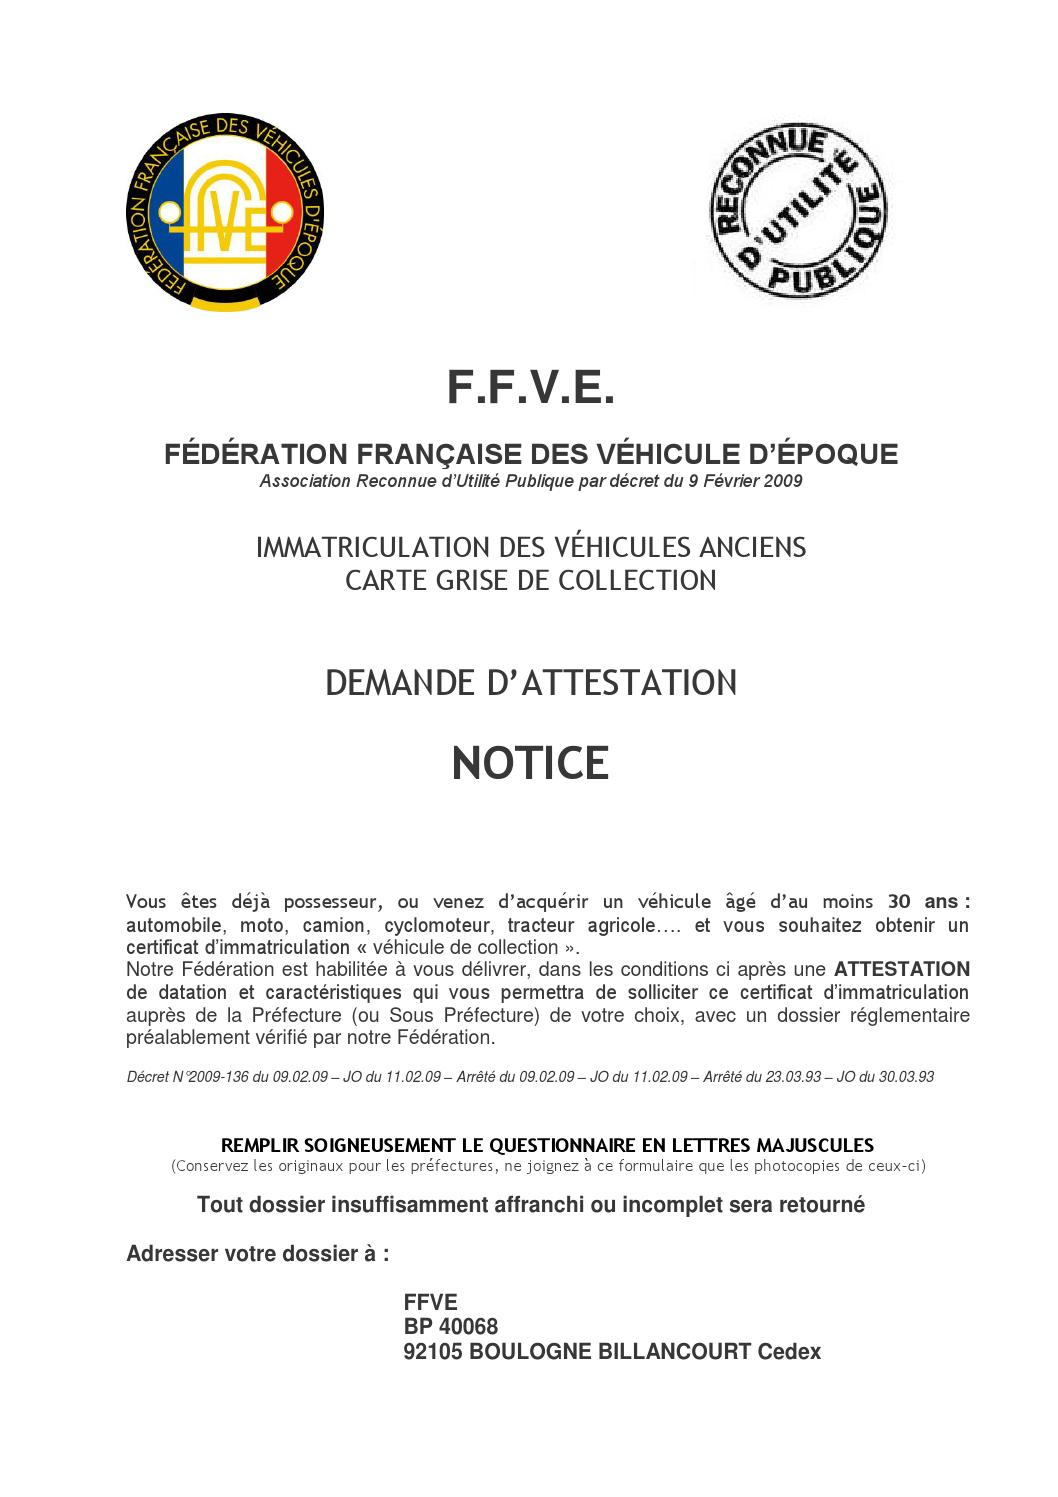 notice pour remplir la demande d attestation ffve by le rocher issuu. Black Bedroom Furniture Sets. Home Design Ideas